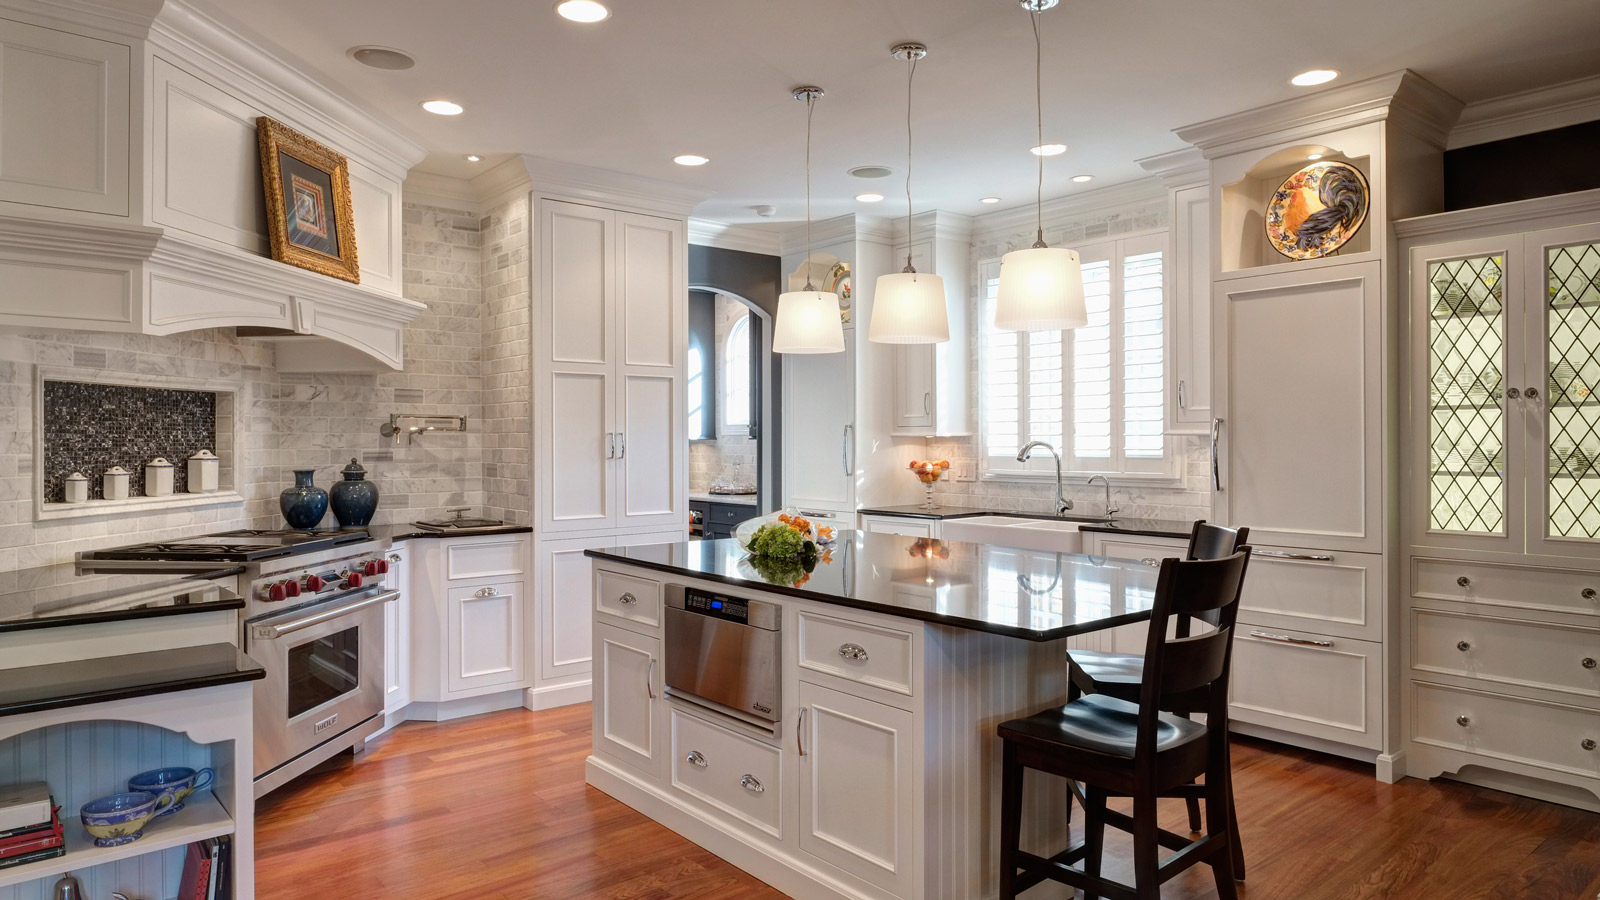 Interior Design Portfolio Kitchen And Bath Design Drury Design - Timeless kitchen design